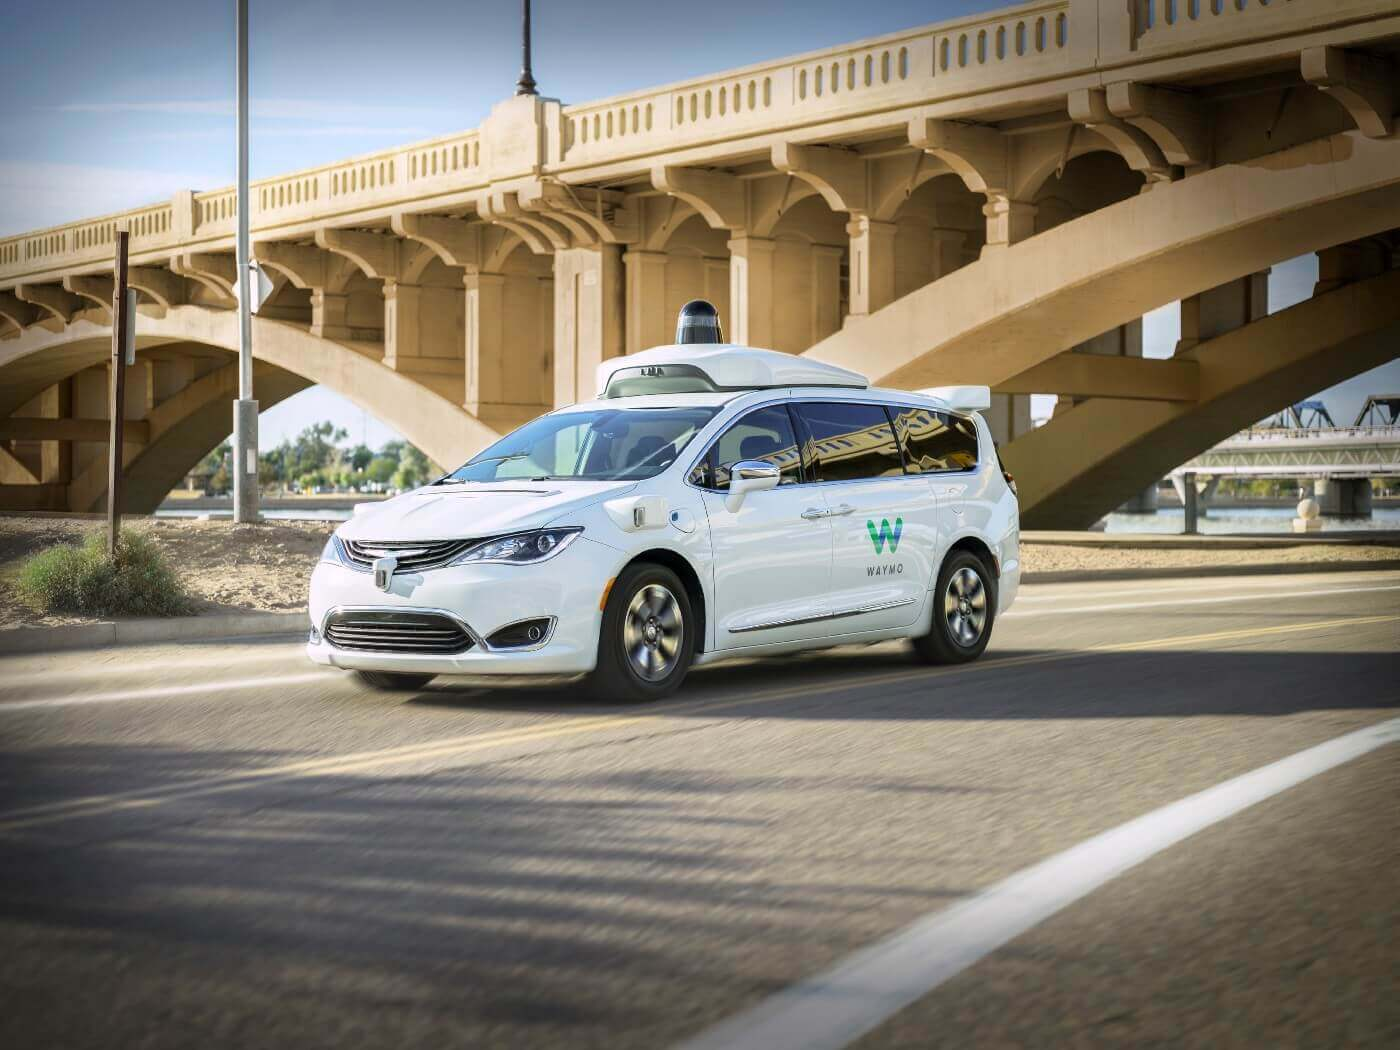 Waymo is close to offering truly driverless rides with no safety driver